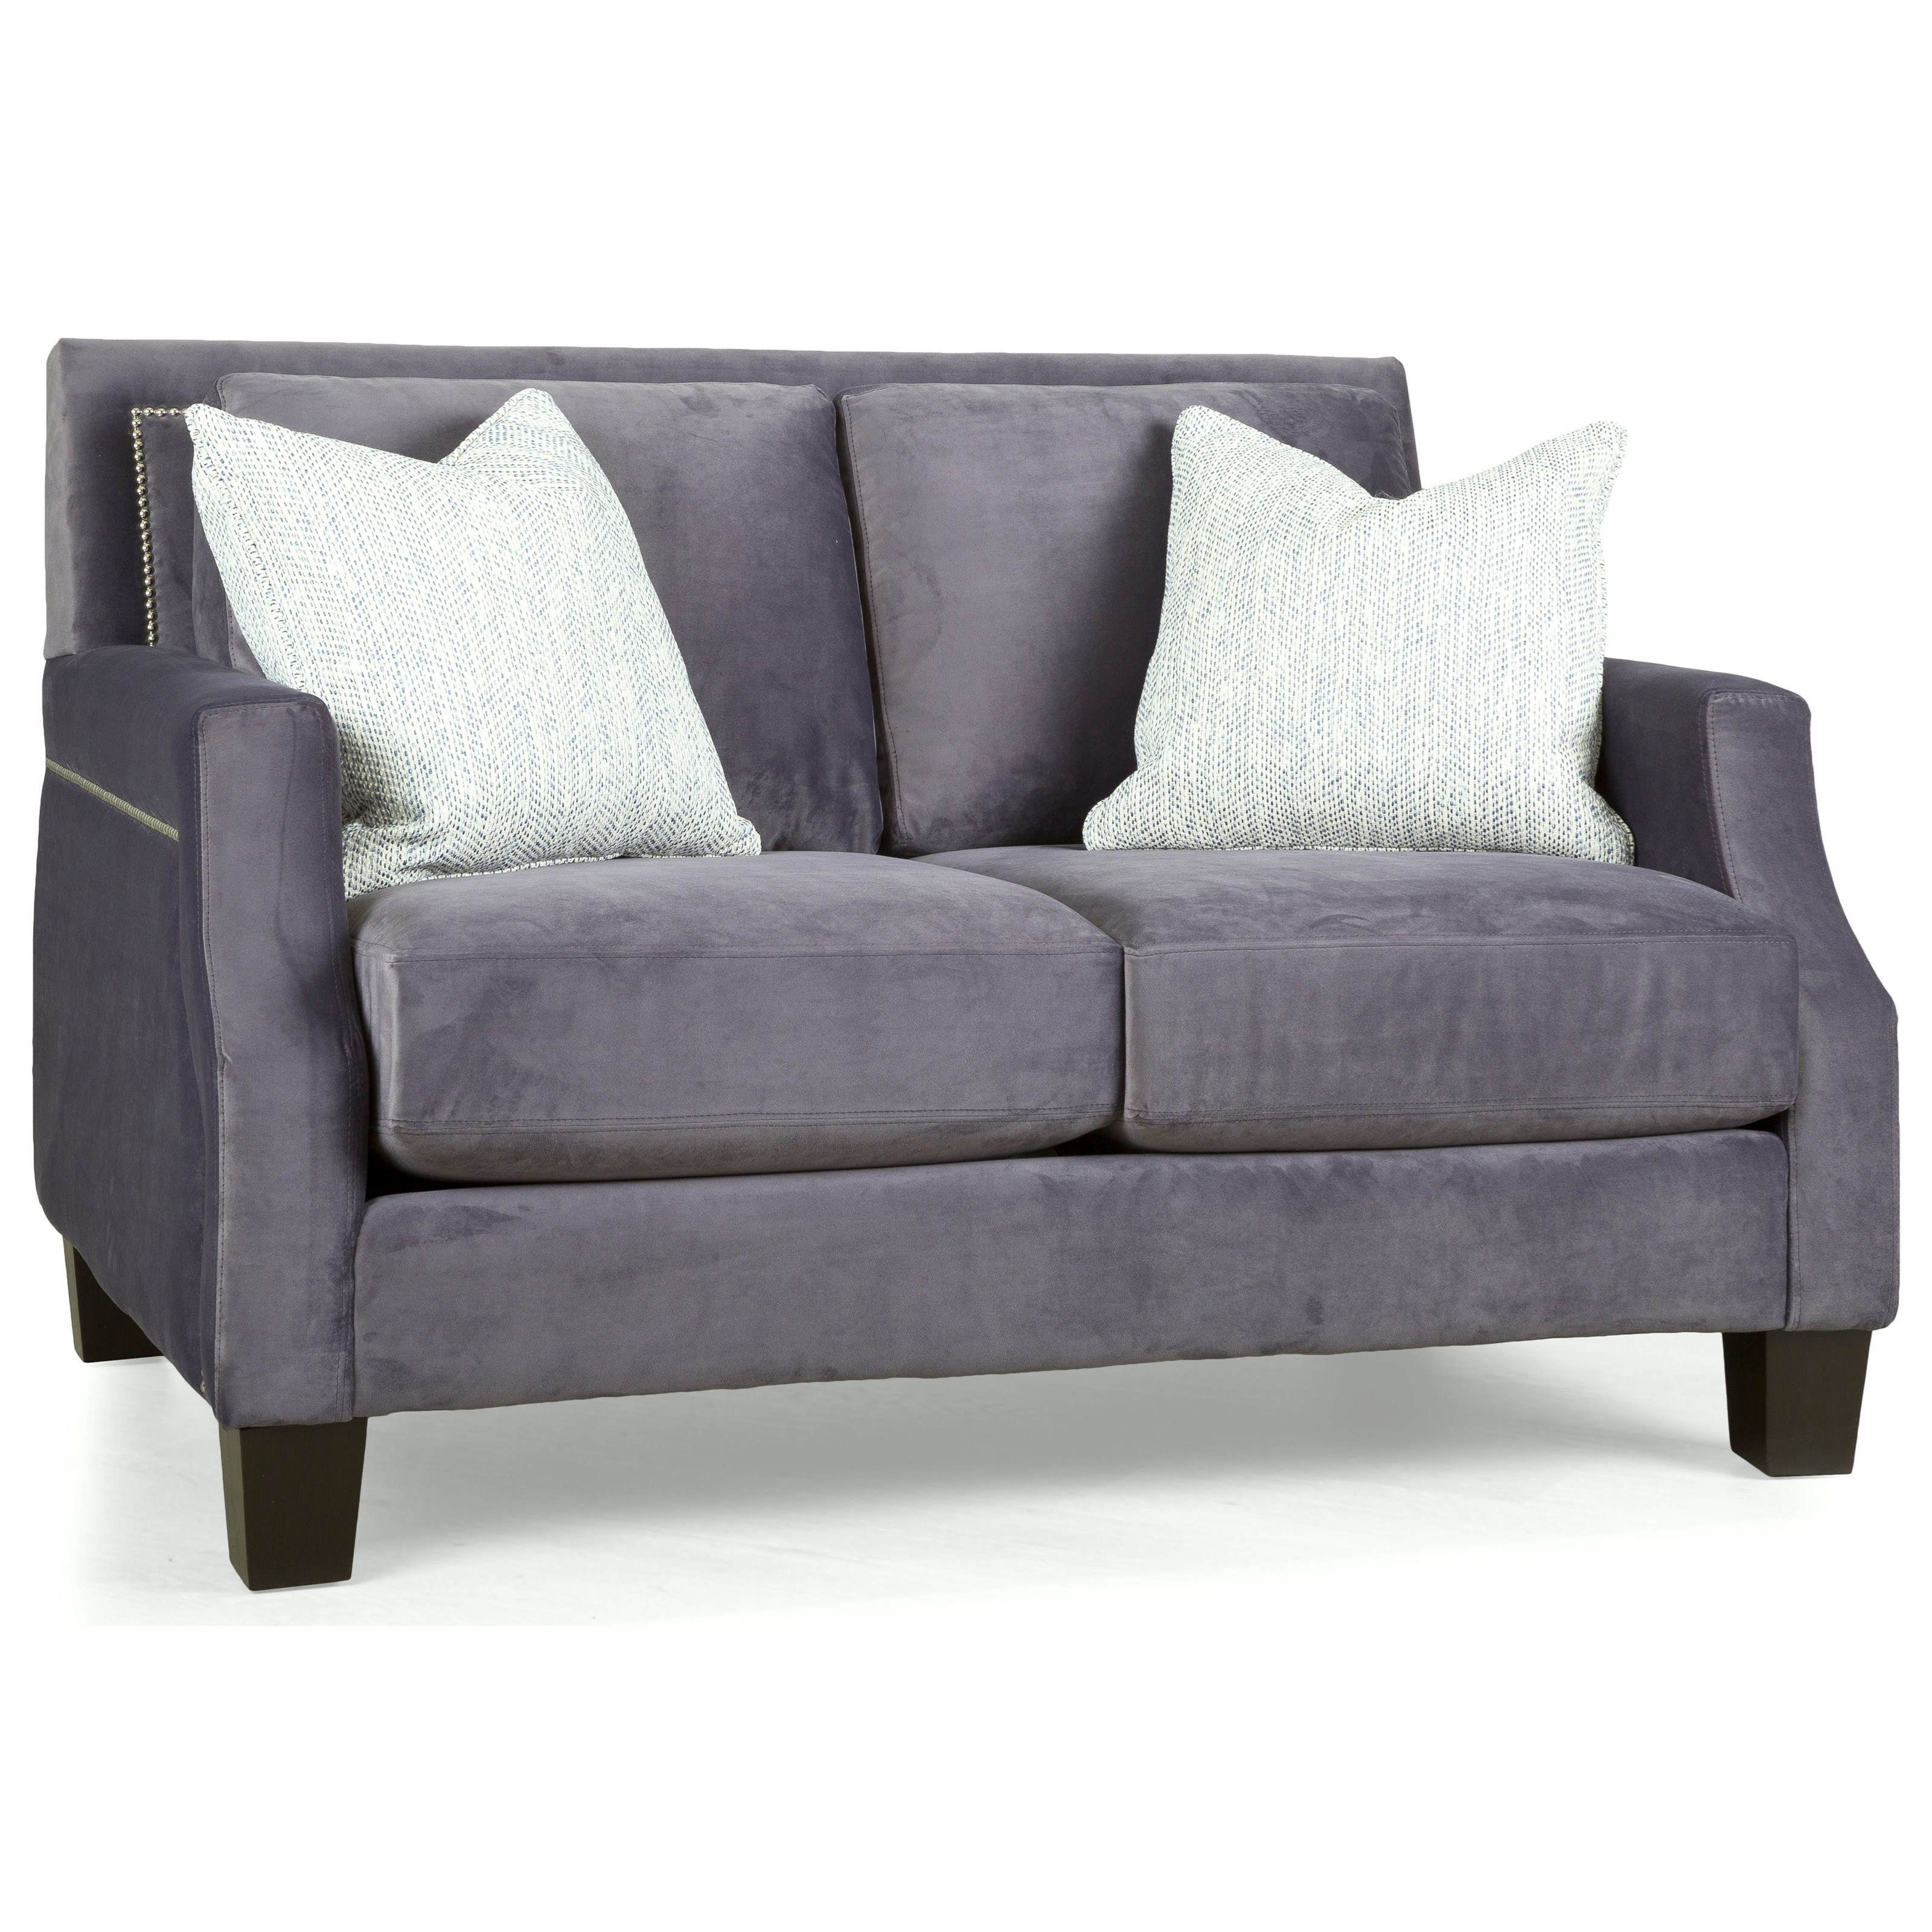 2135  Loveseat by Decor-Rest at Upper Room Home Furnishings